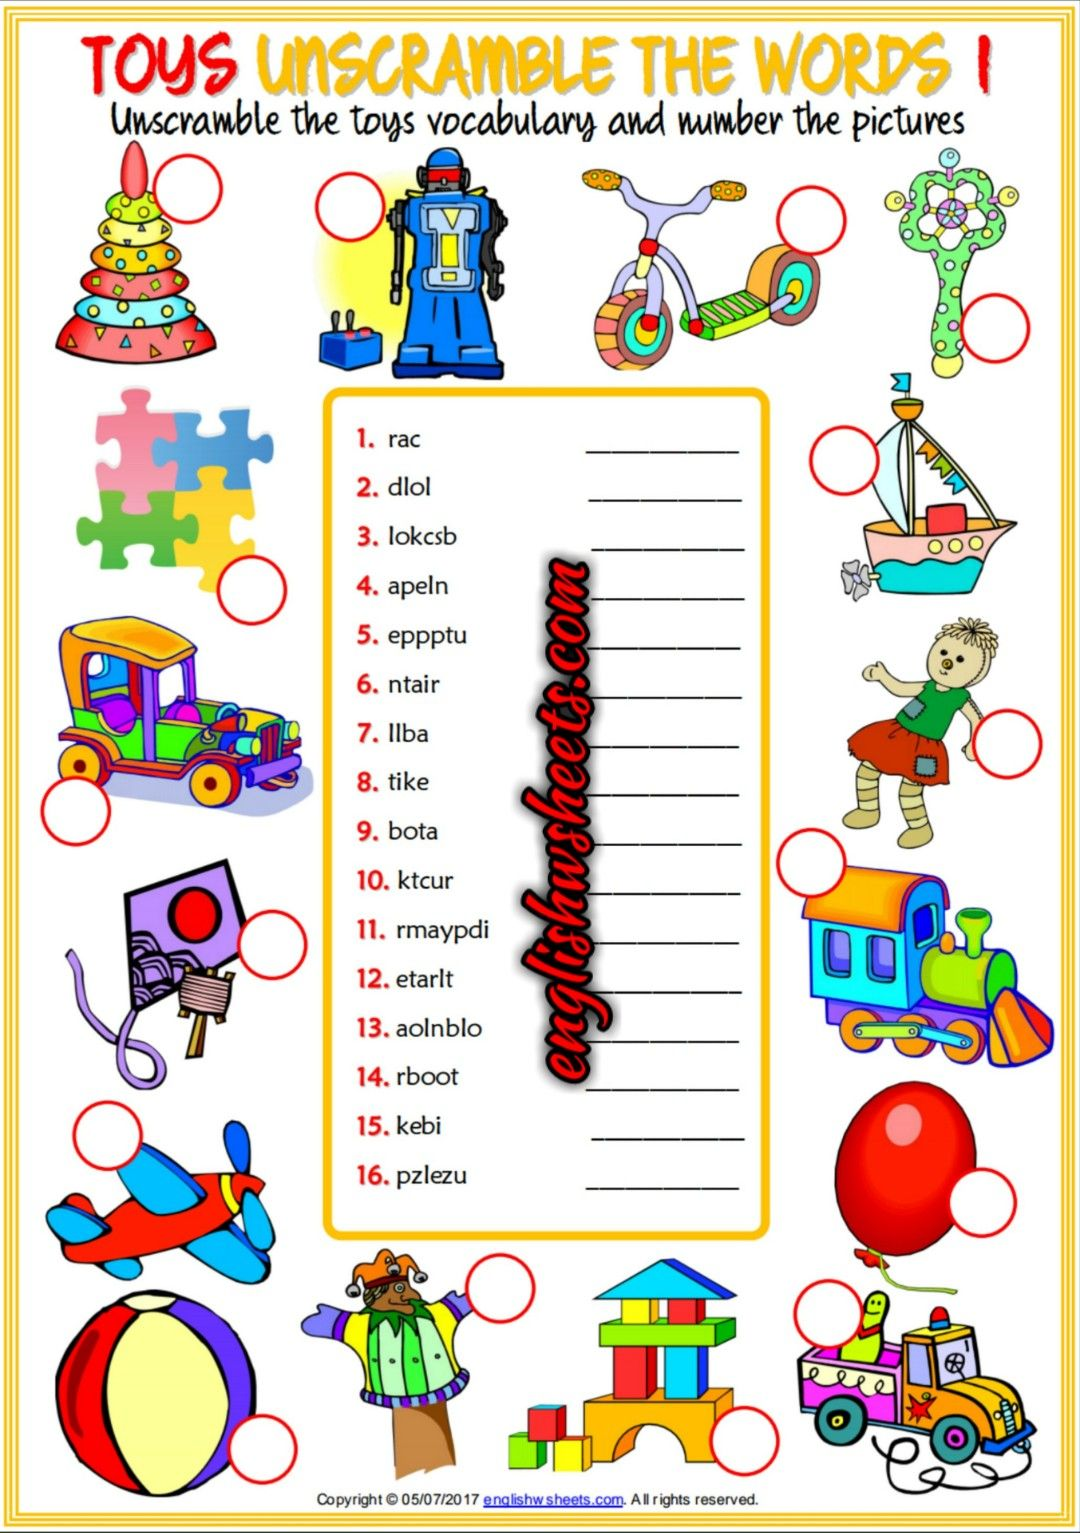 Toys Esl Printable Unscramble The Words Worksheets For Kids Toys Esl Printables Unscramble